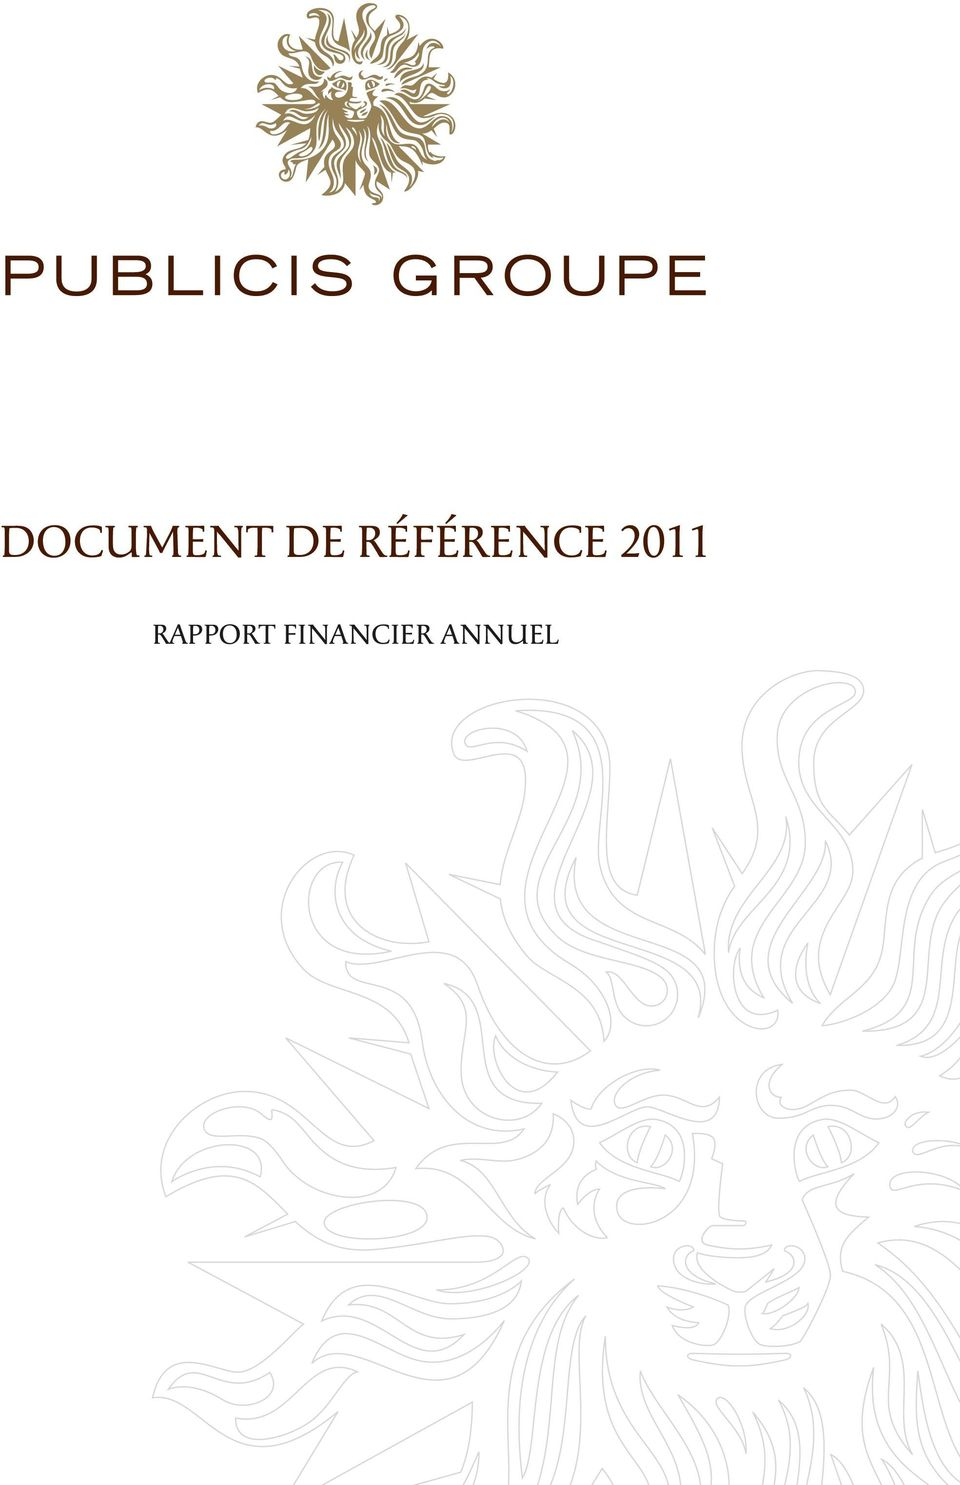 2011 RAPPORT